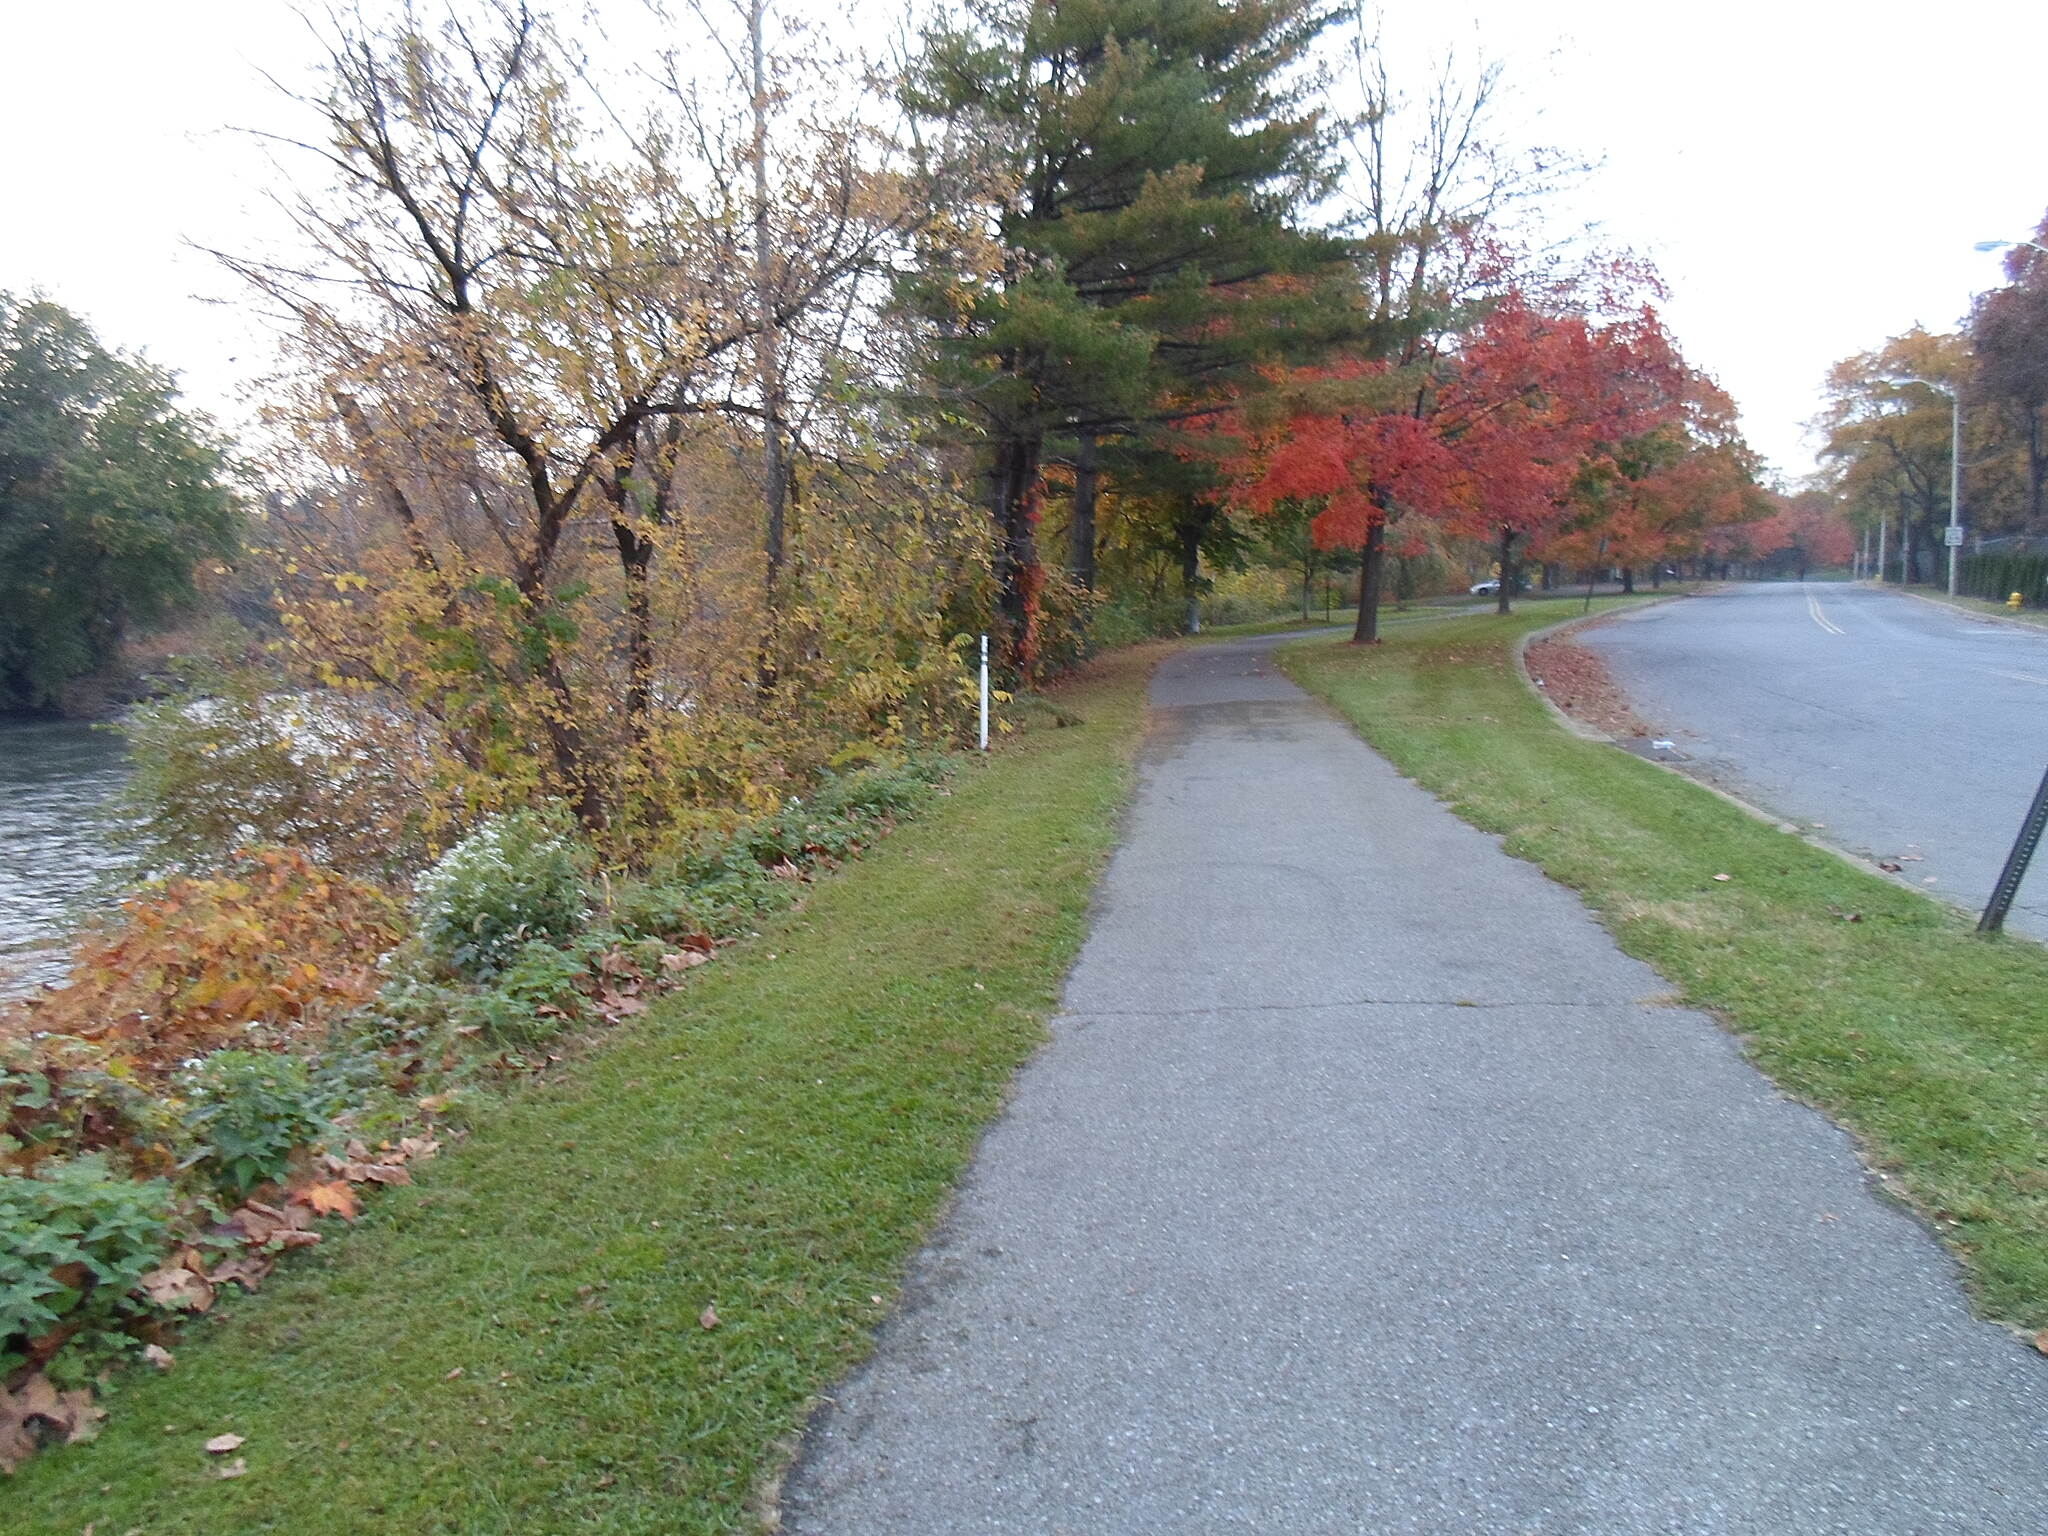 Neversink Connector Trail Neversink Connector Trail Approaching Riverfront Park from the southeast.